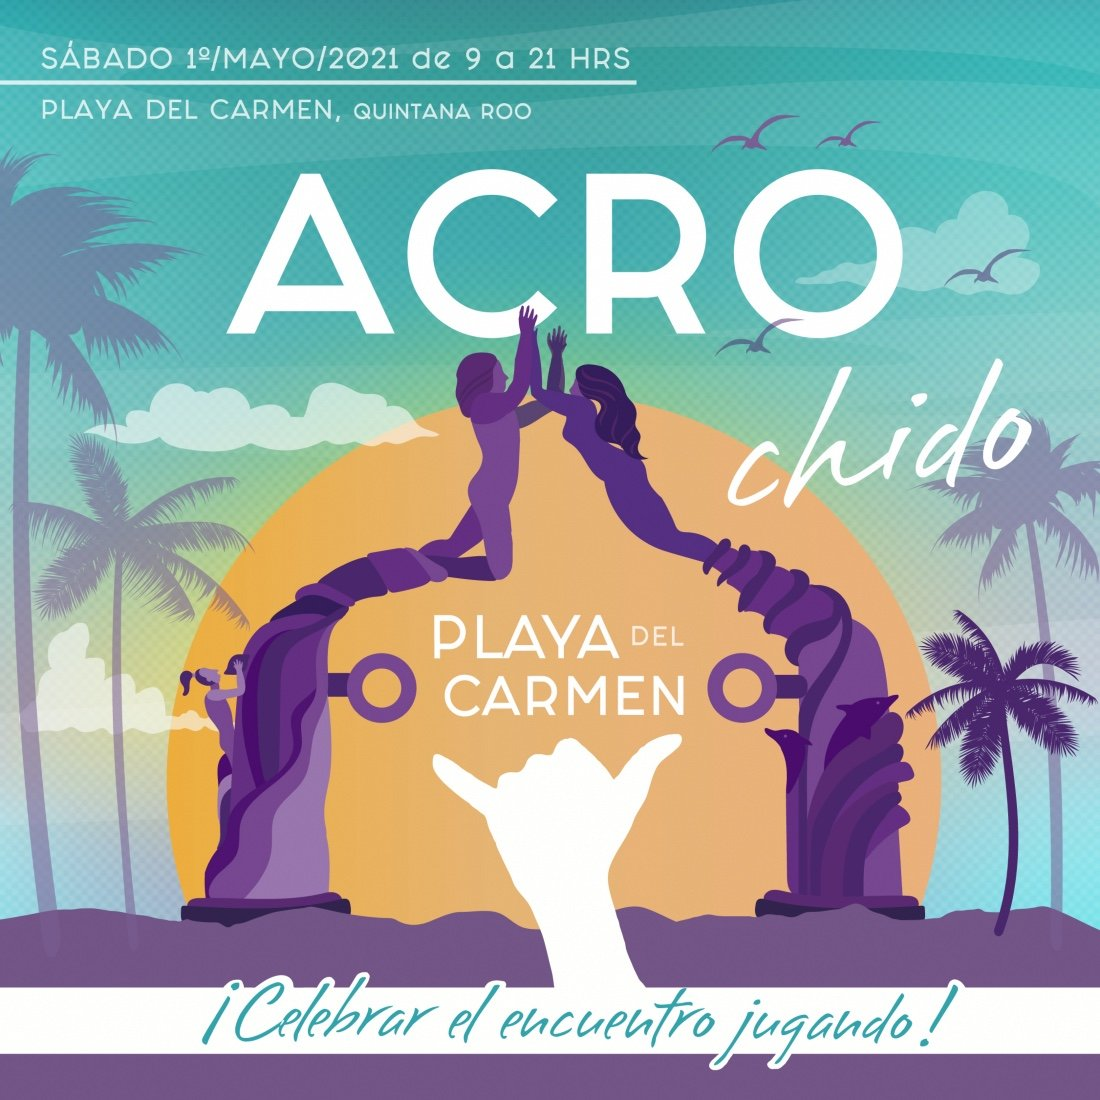 Acrochido Acroyoga Festival, 1 May | Event in Playa Del Carmen | AllEvents.in